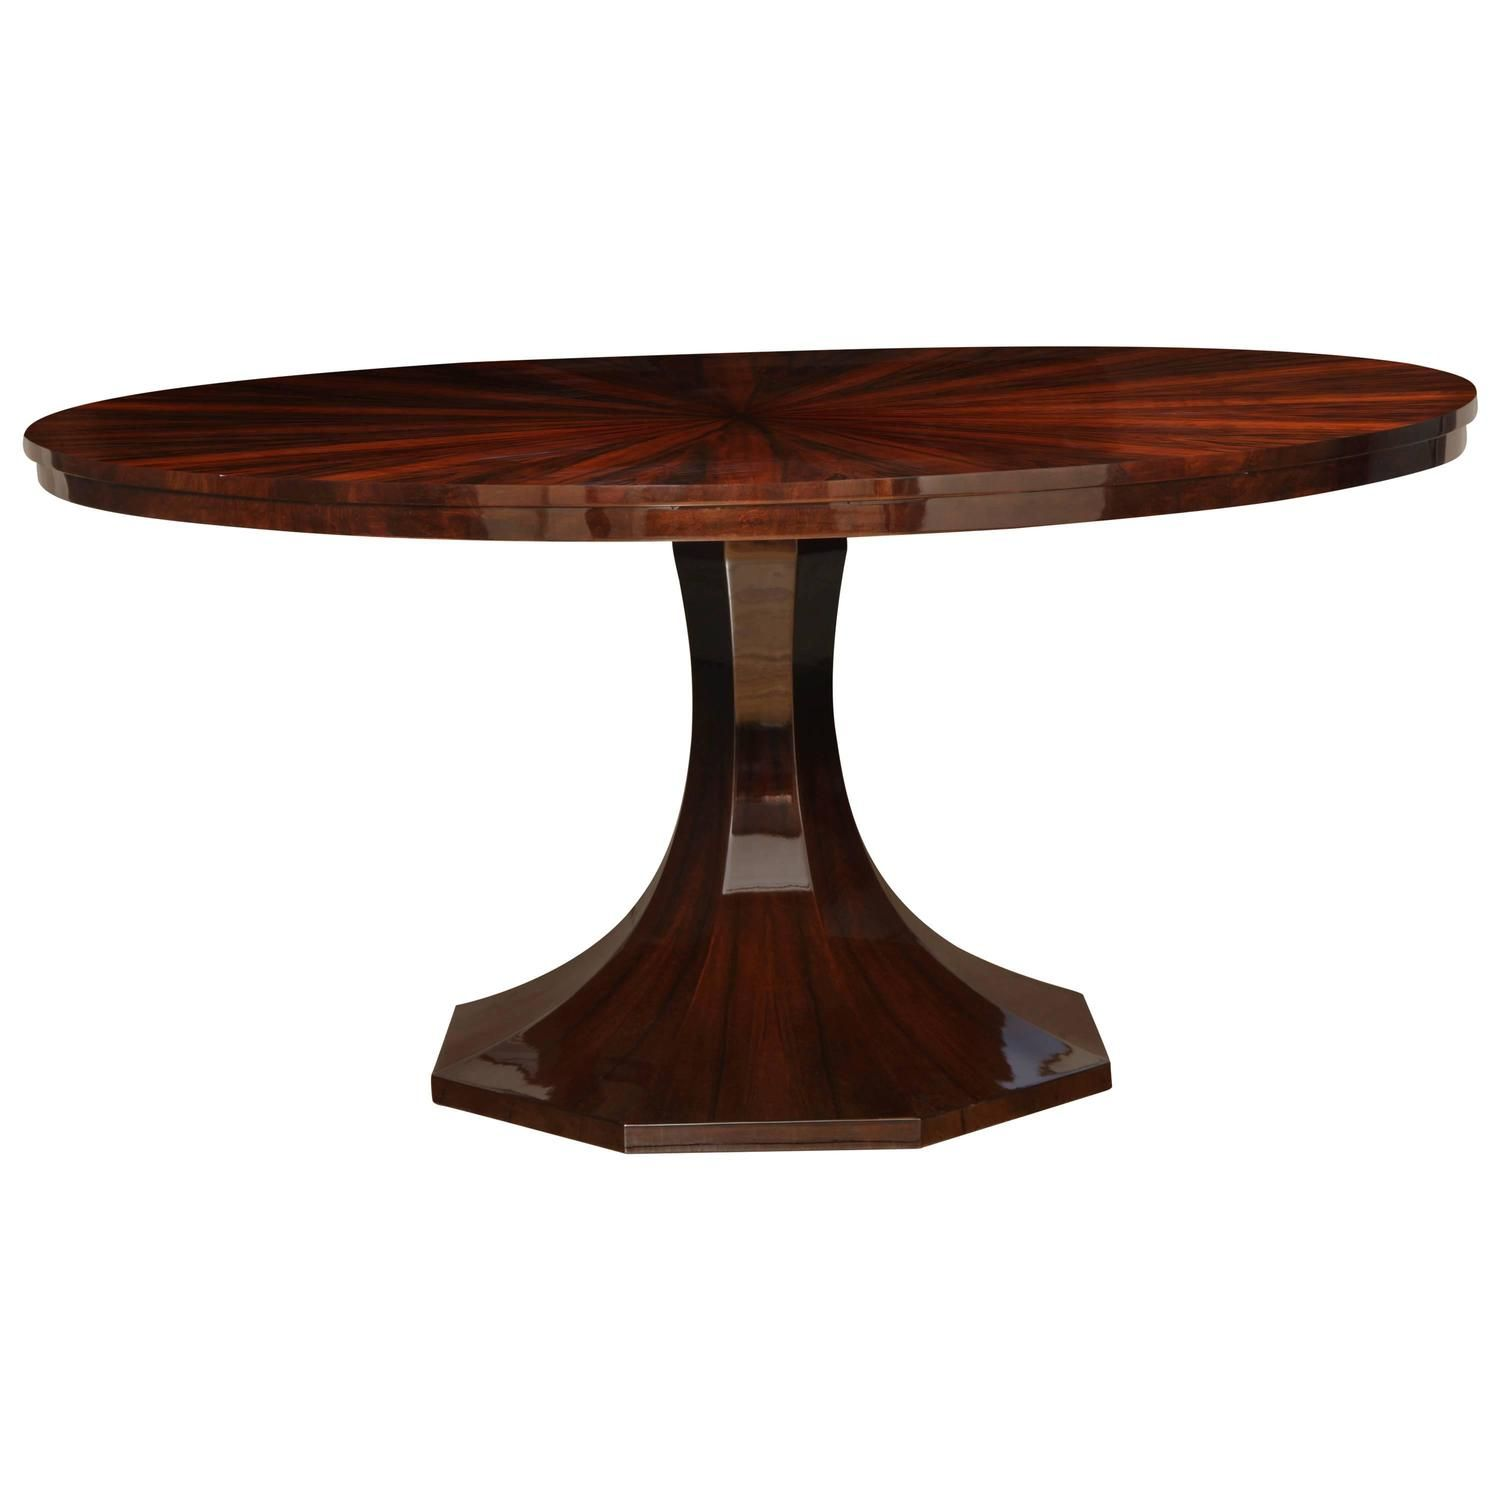 Modern round pedestal dining table - Art Deco Round Pedestal Dining Table In Black Forest Walnut Circa 1938